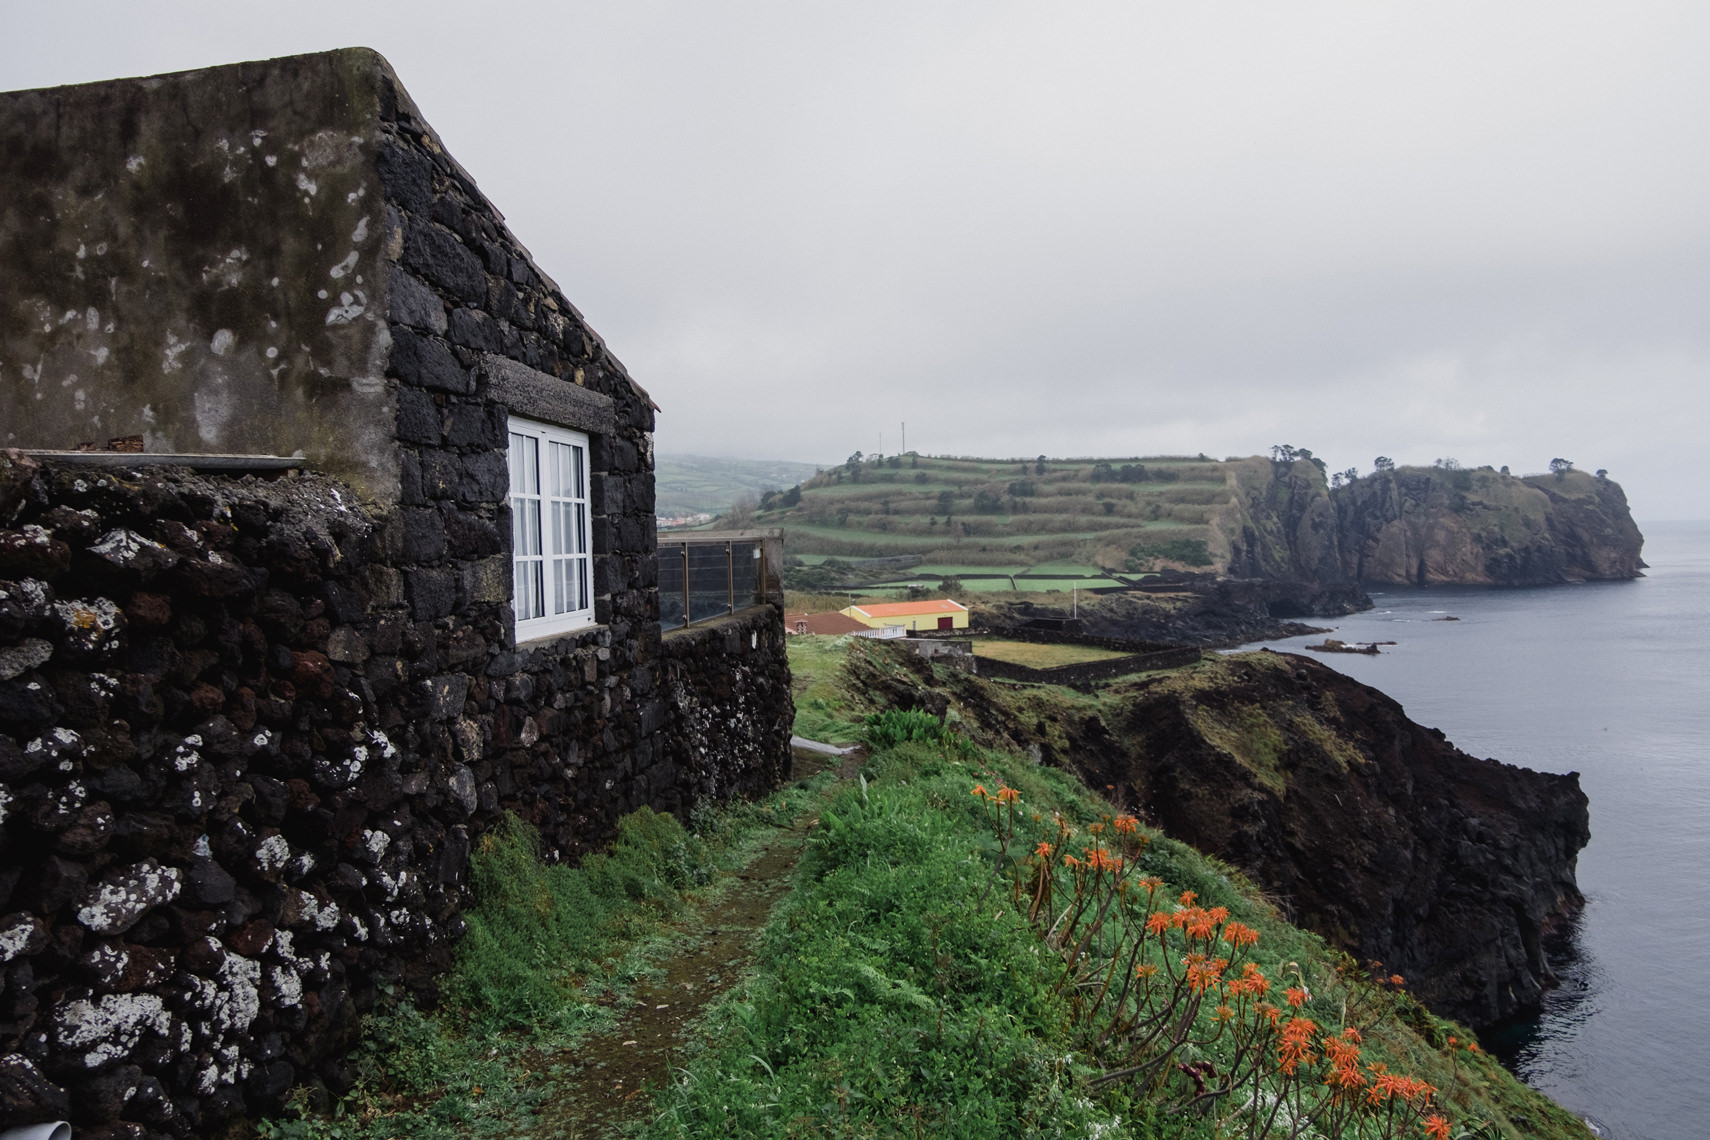 Sea cliffs at Capelas, Sao Miguel, Azores